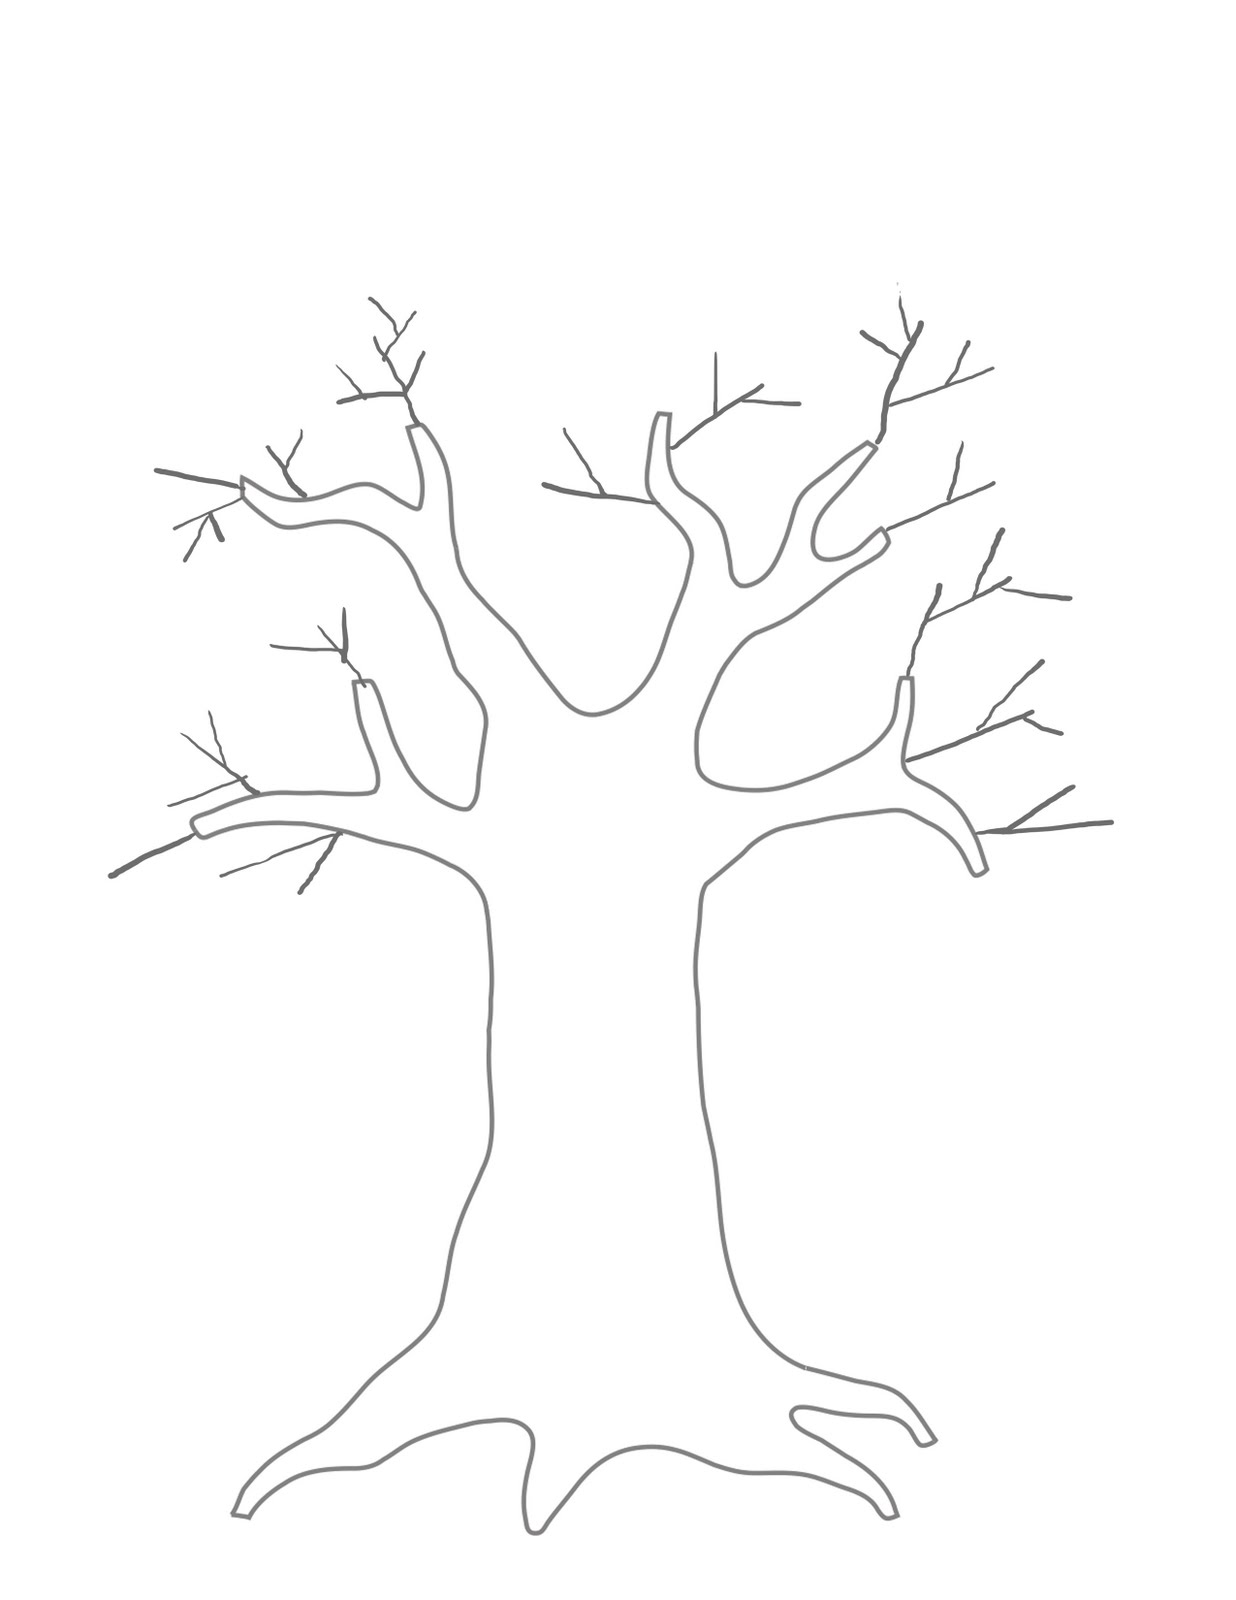 how to draw a tree trunk with branches